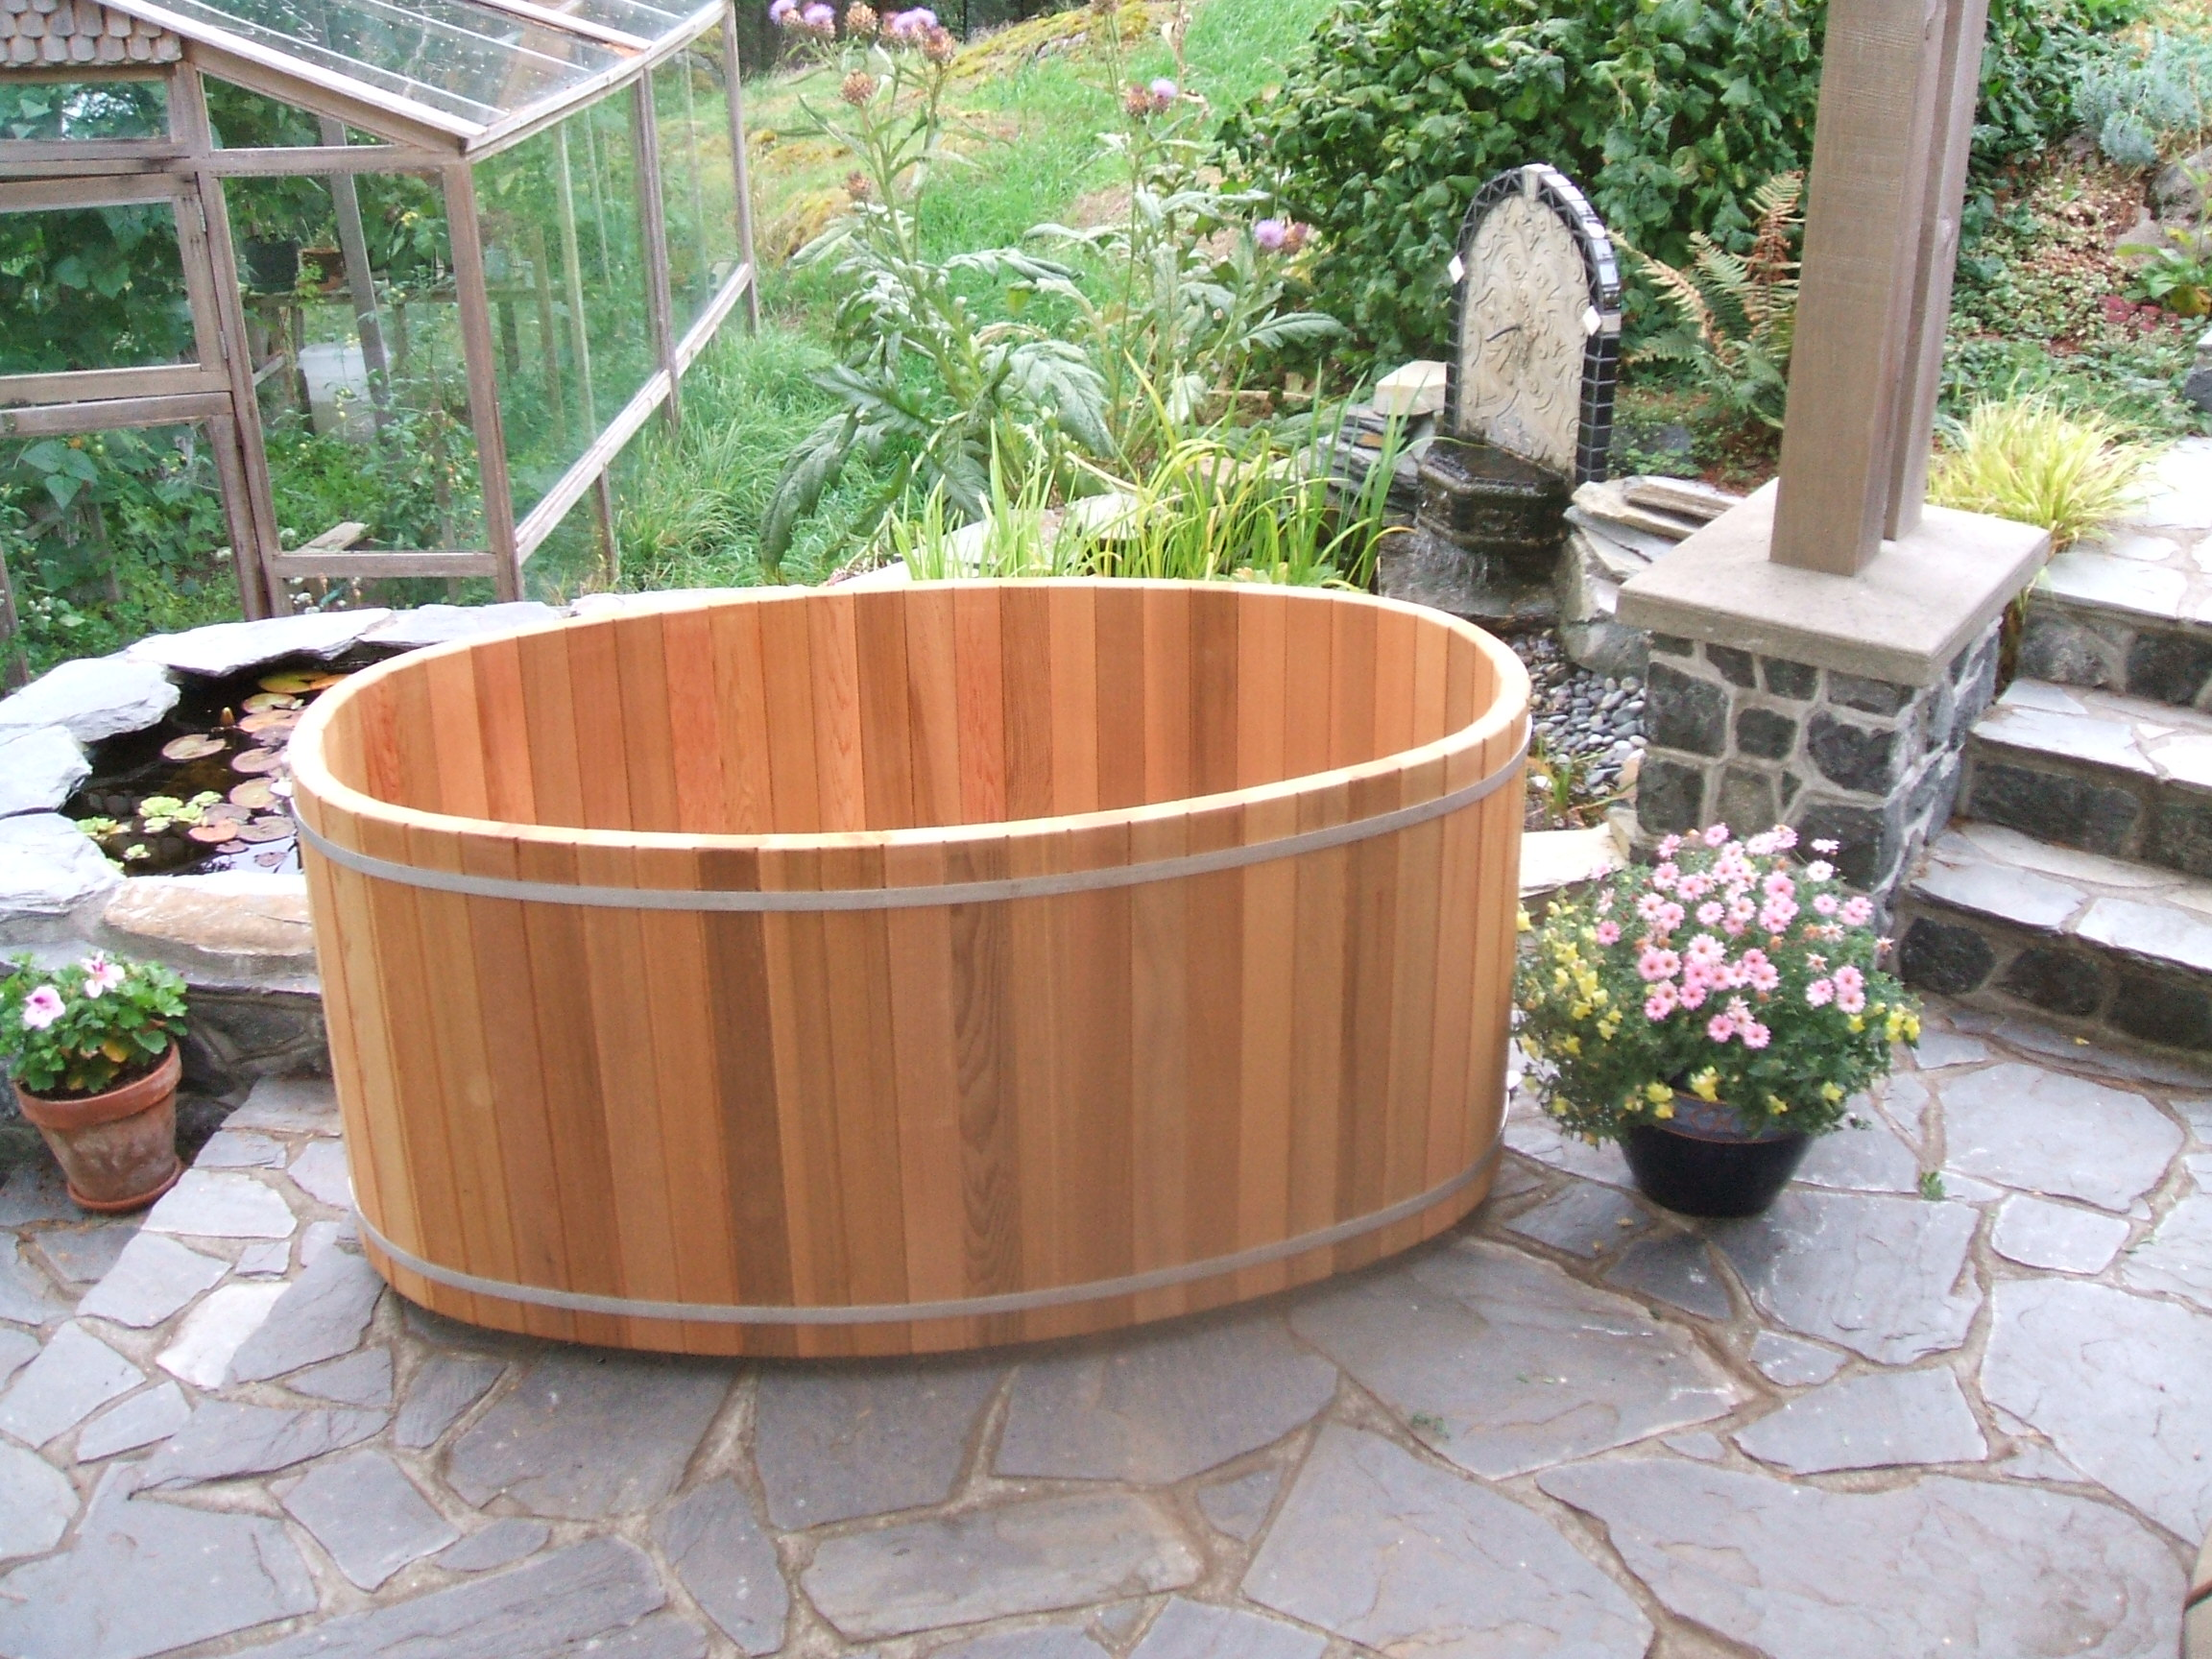 Wood Barrel Round Soaking Tub For Sale Forest Lumber Cooperage